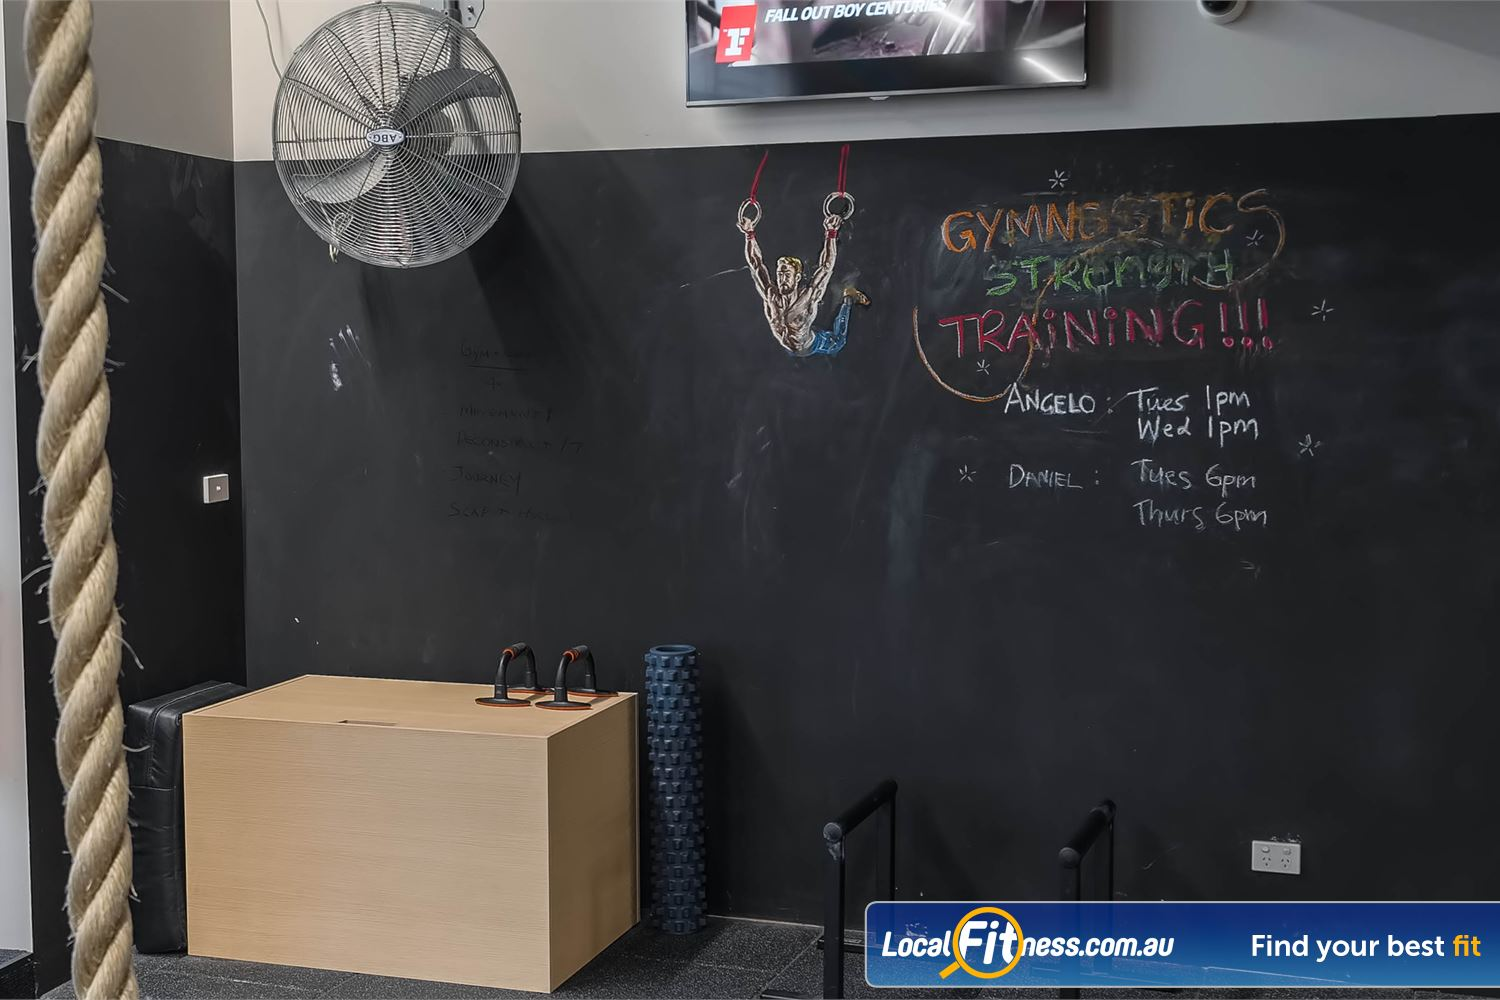 Fitness First Platinum Park St Near World Square Get your Gymnastic Strength Training and WOD (Workout fo the Day) at Fitness First Park St.